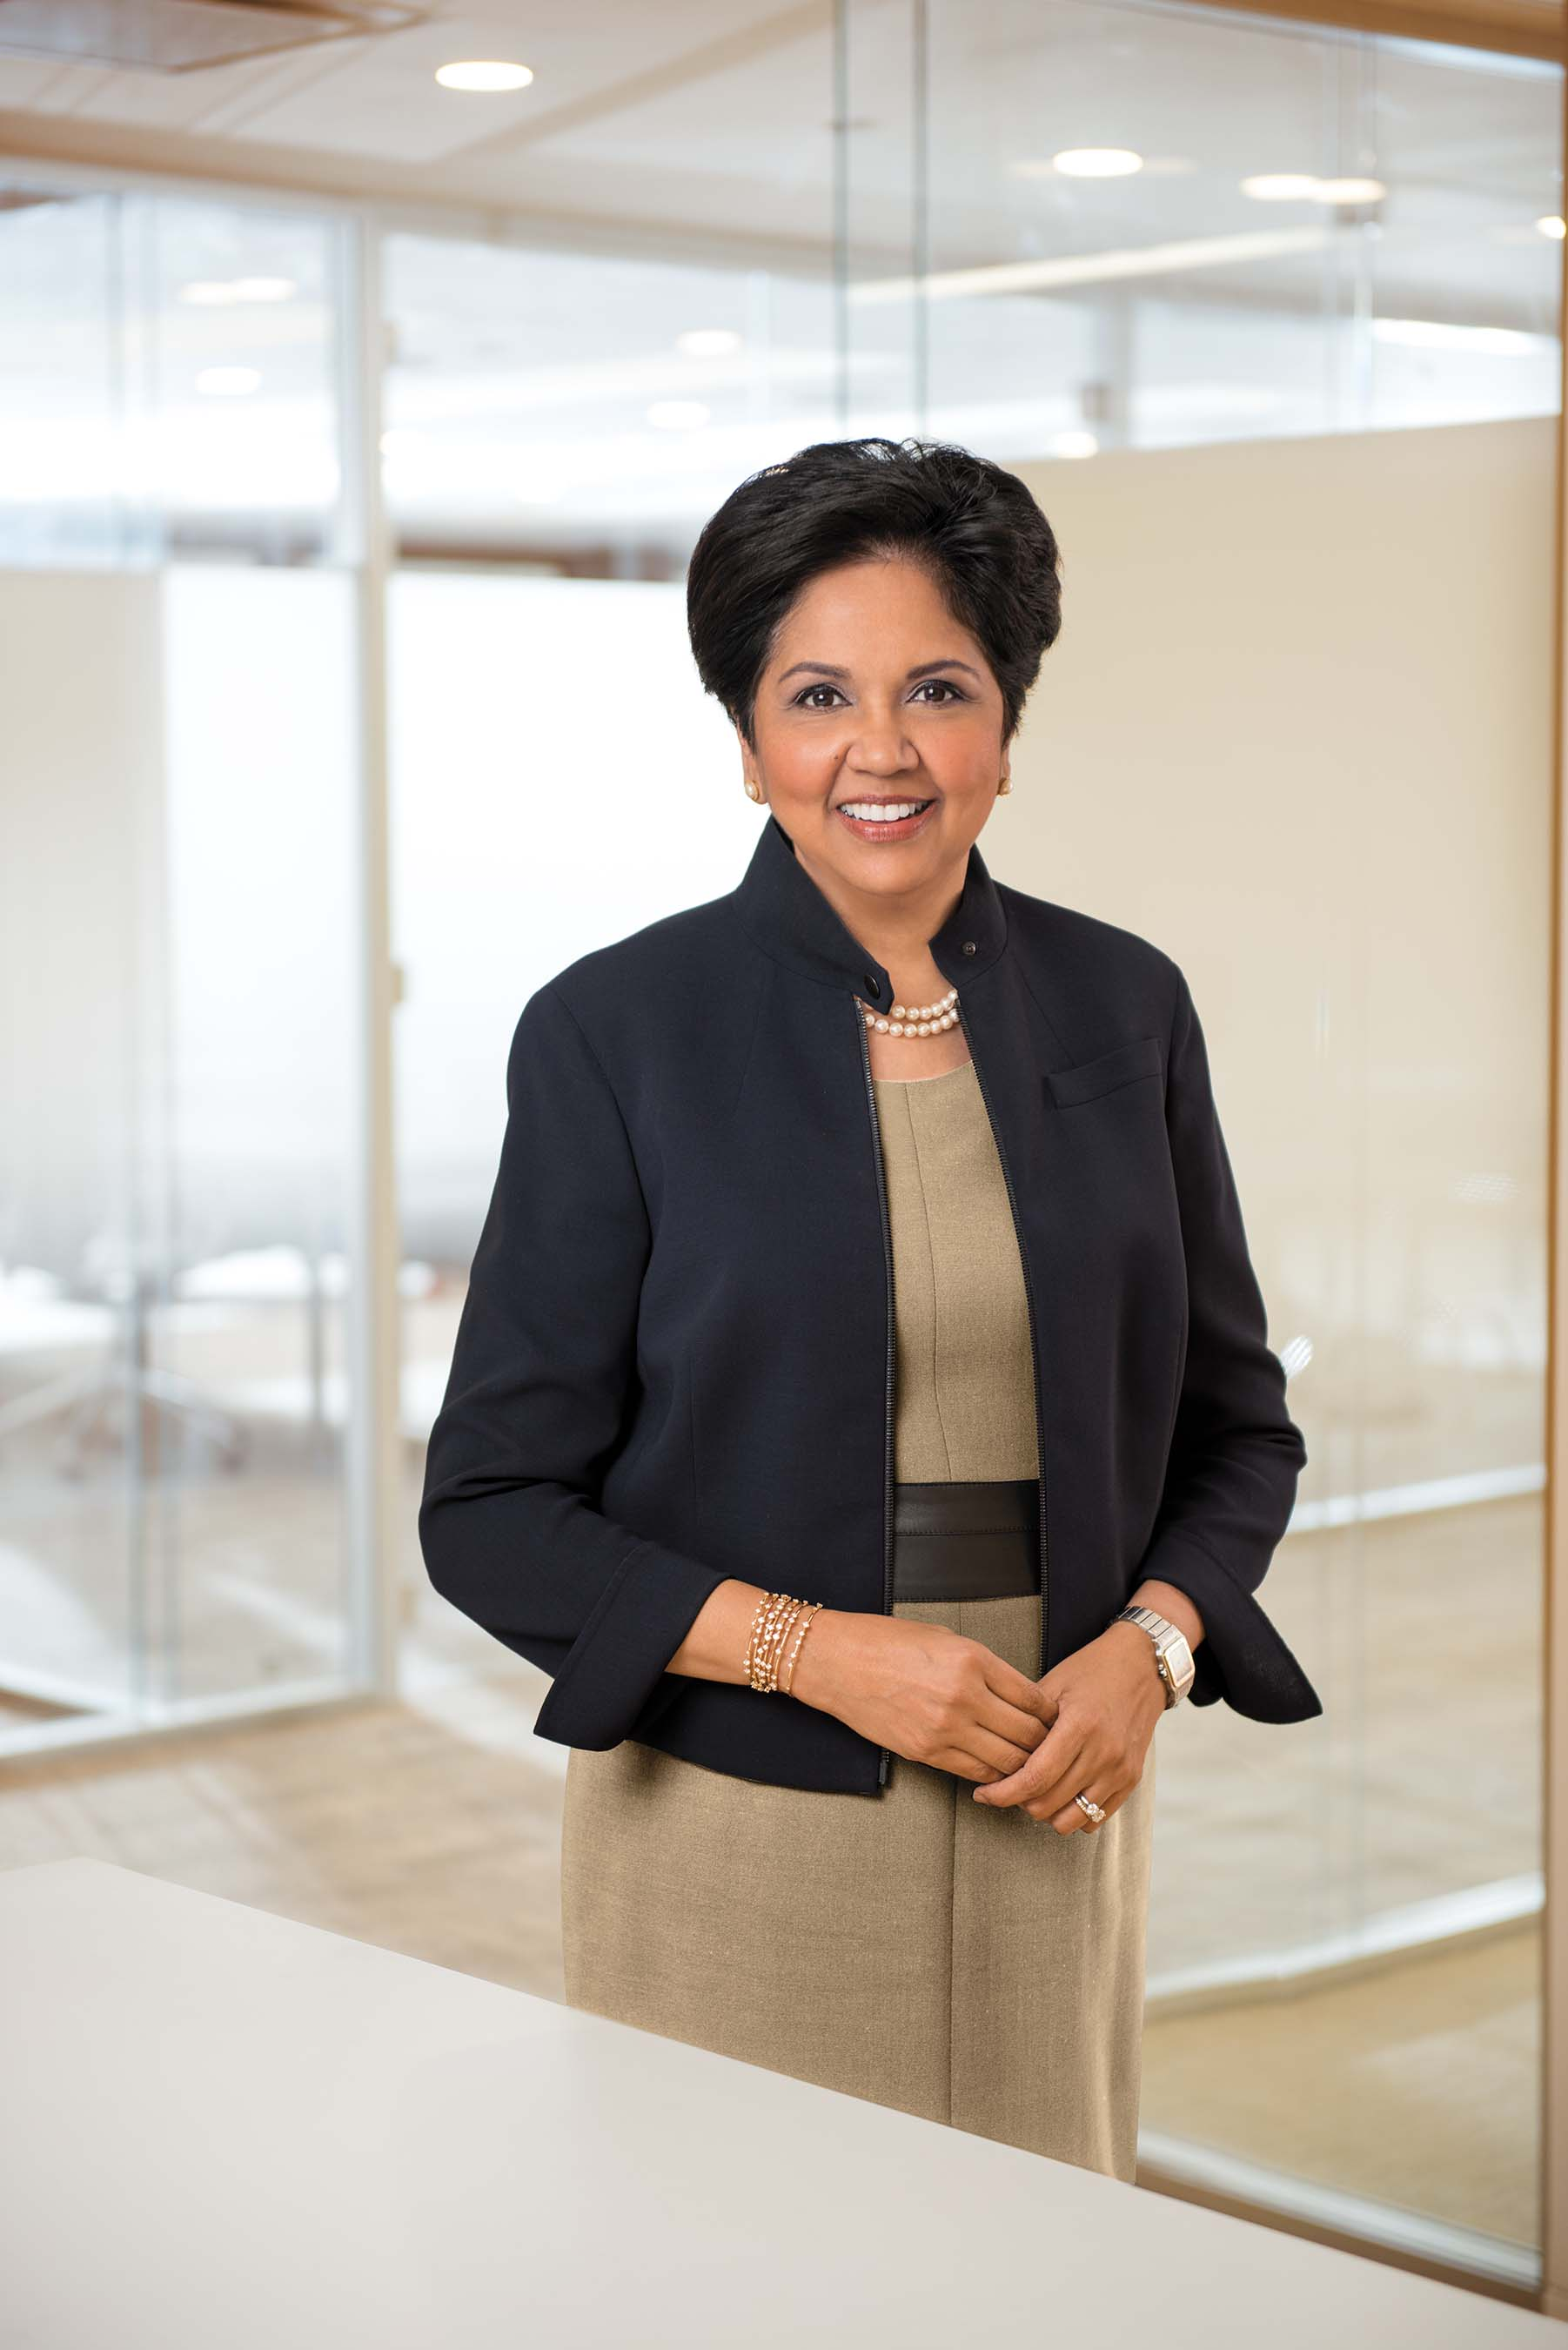 Indra K. Nooyi, Chairman and CEO, PepsiCo